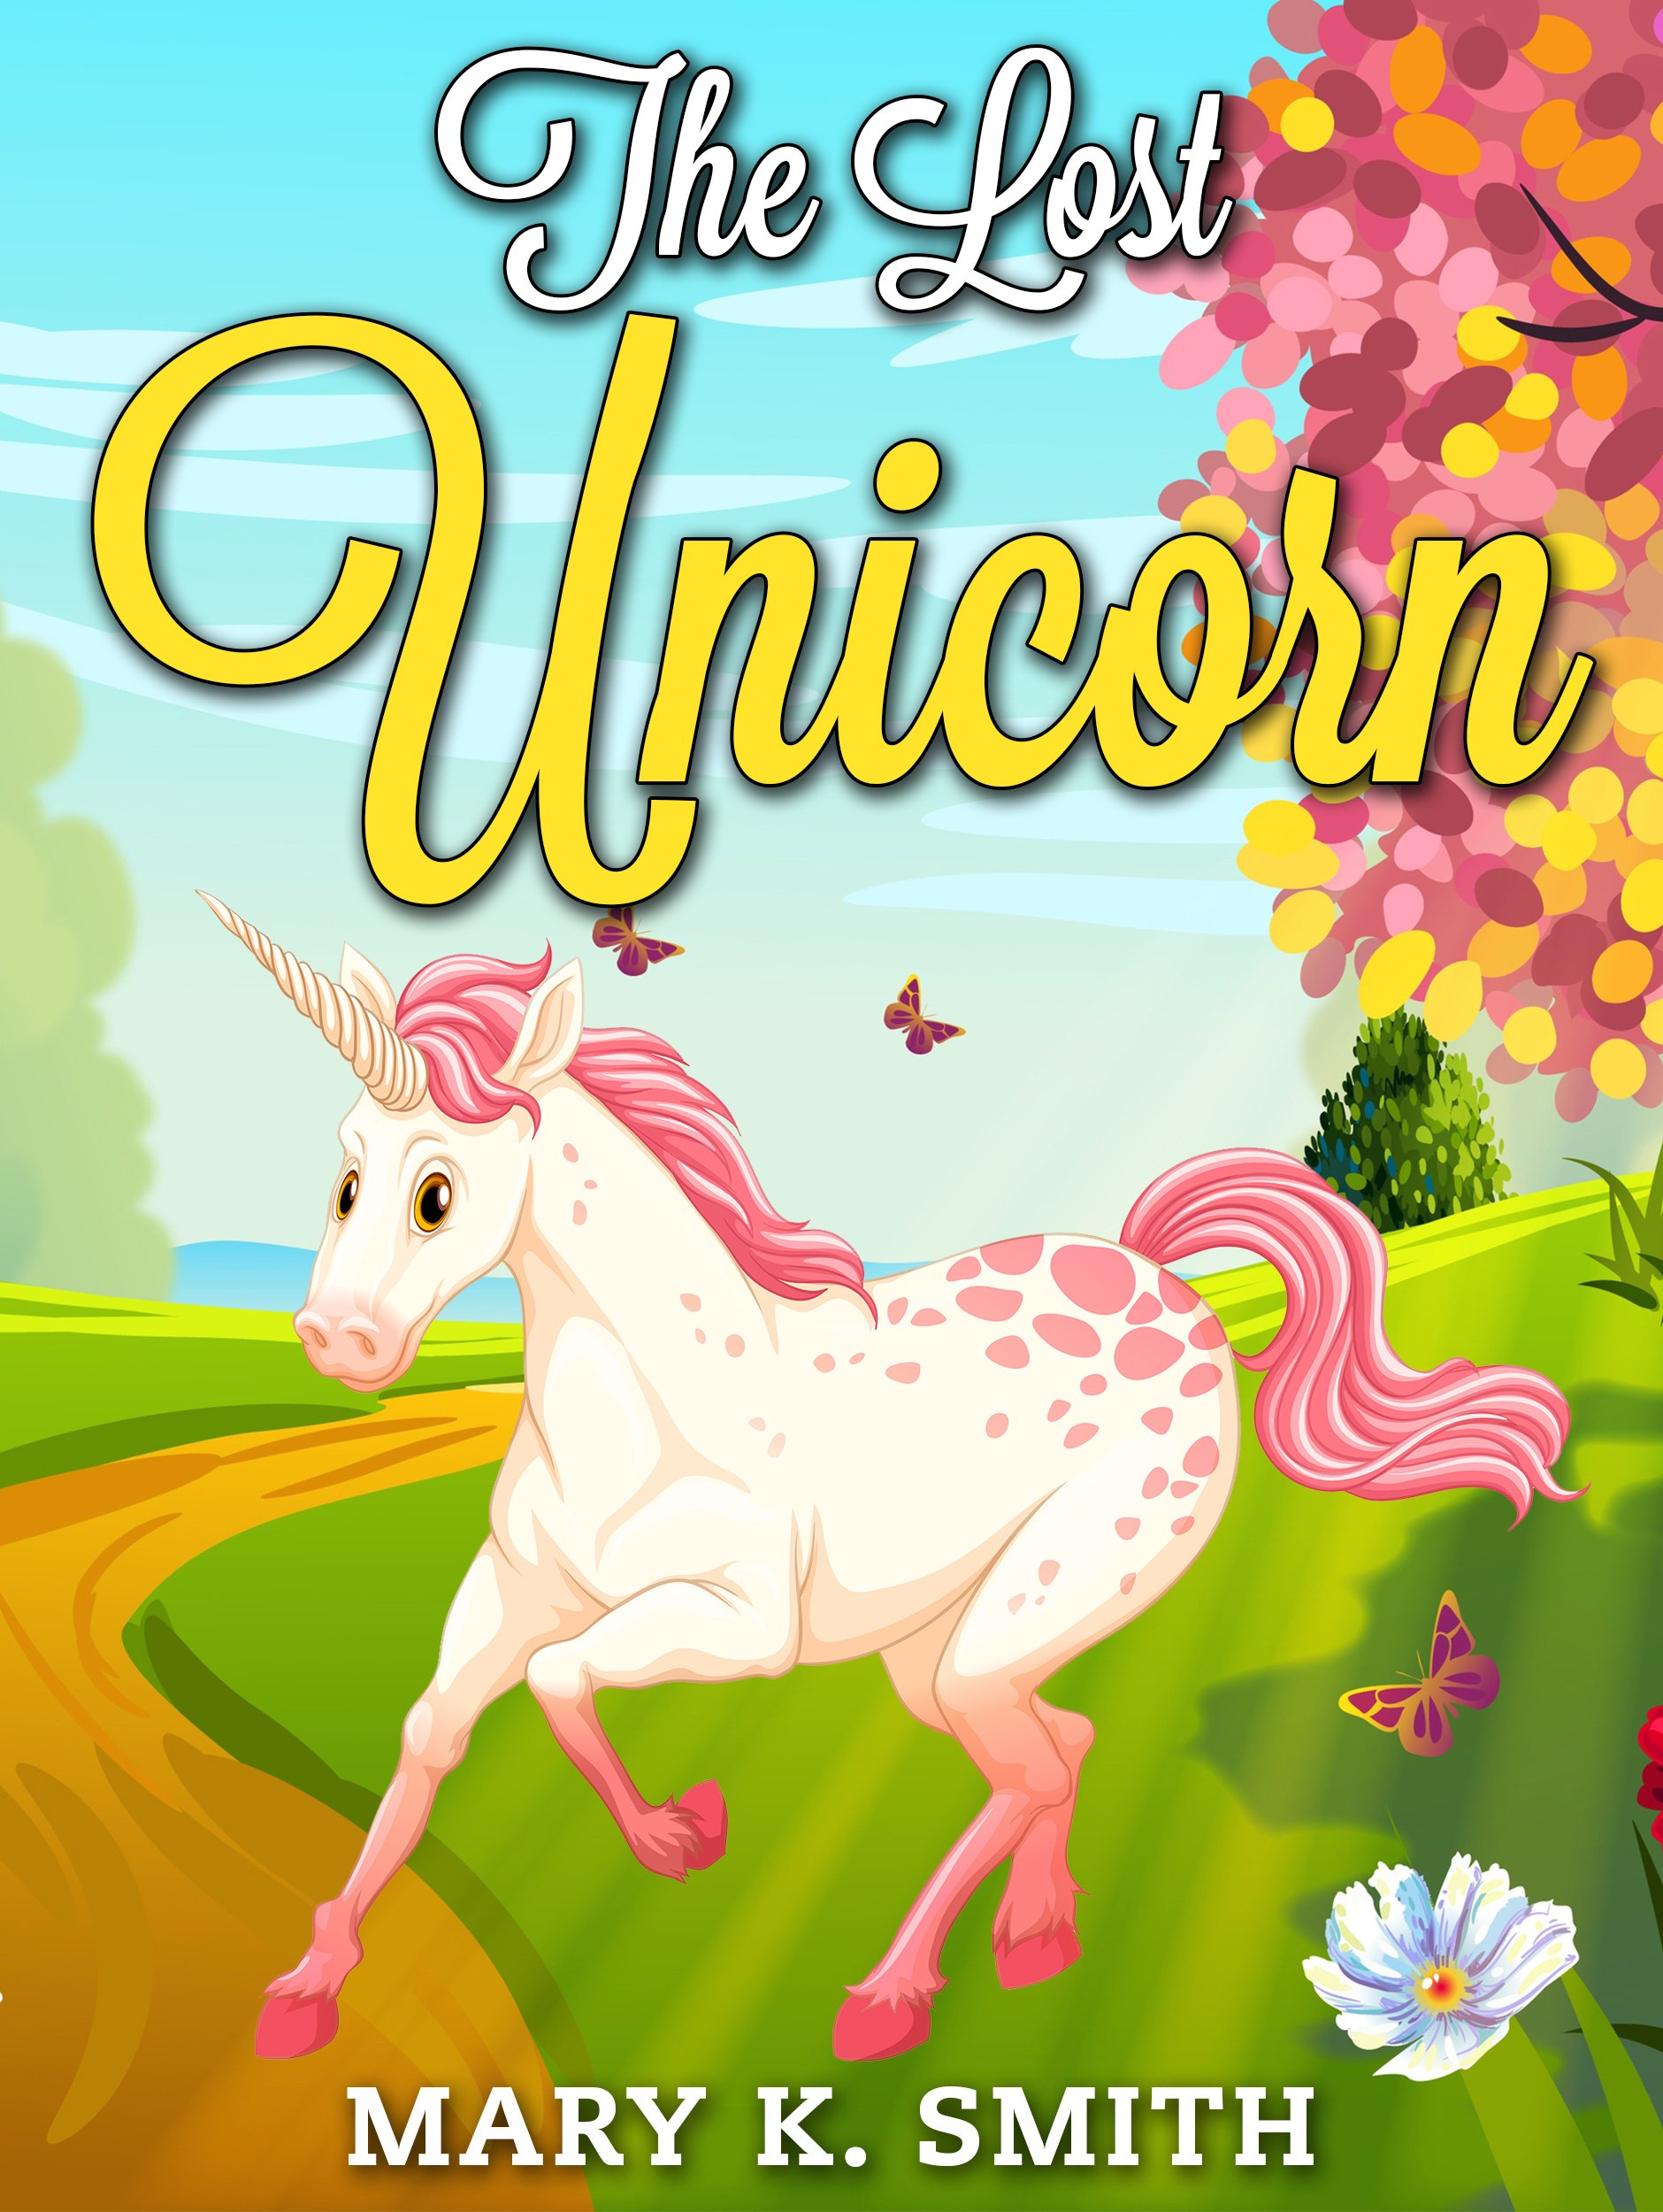 Uncategorized Fairy Tale For Kids reviews fairy tale the lost unicorn bedtime story tales for kids stories reviews